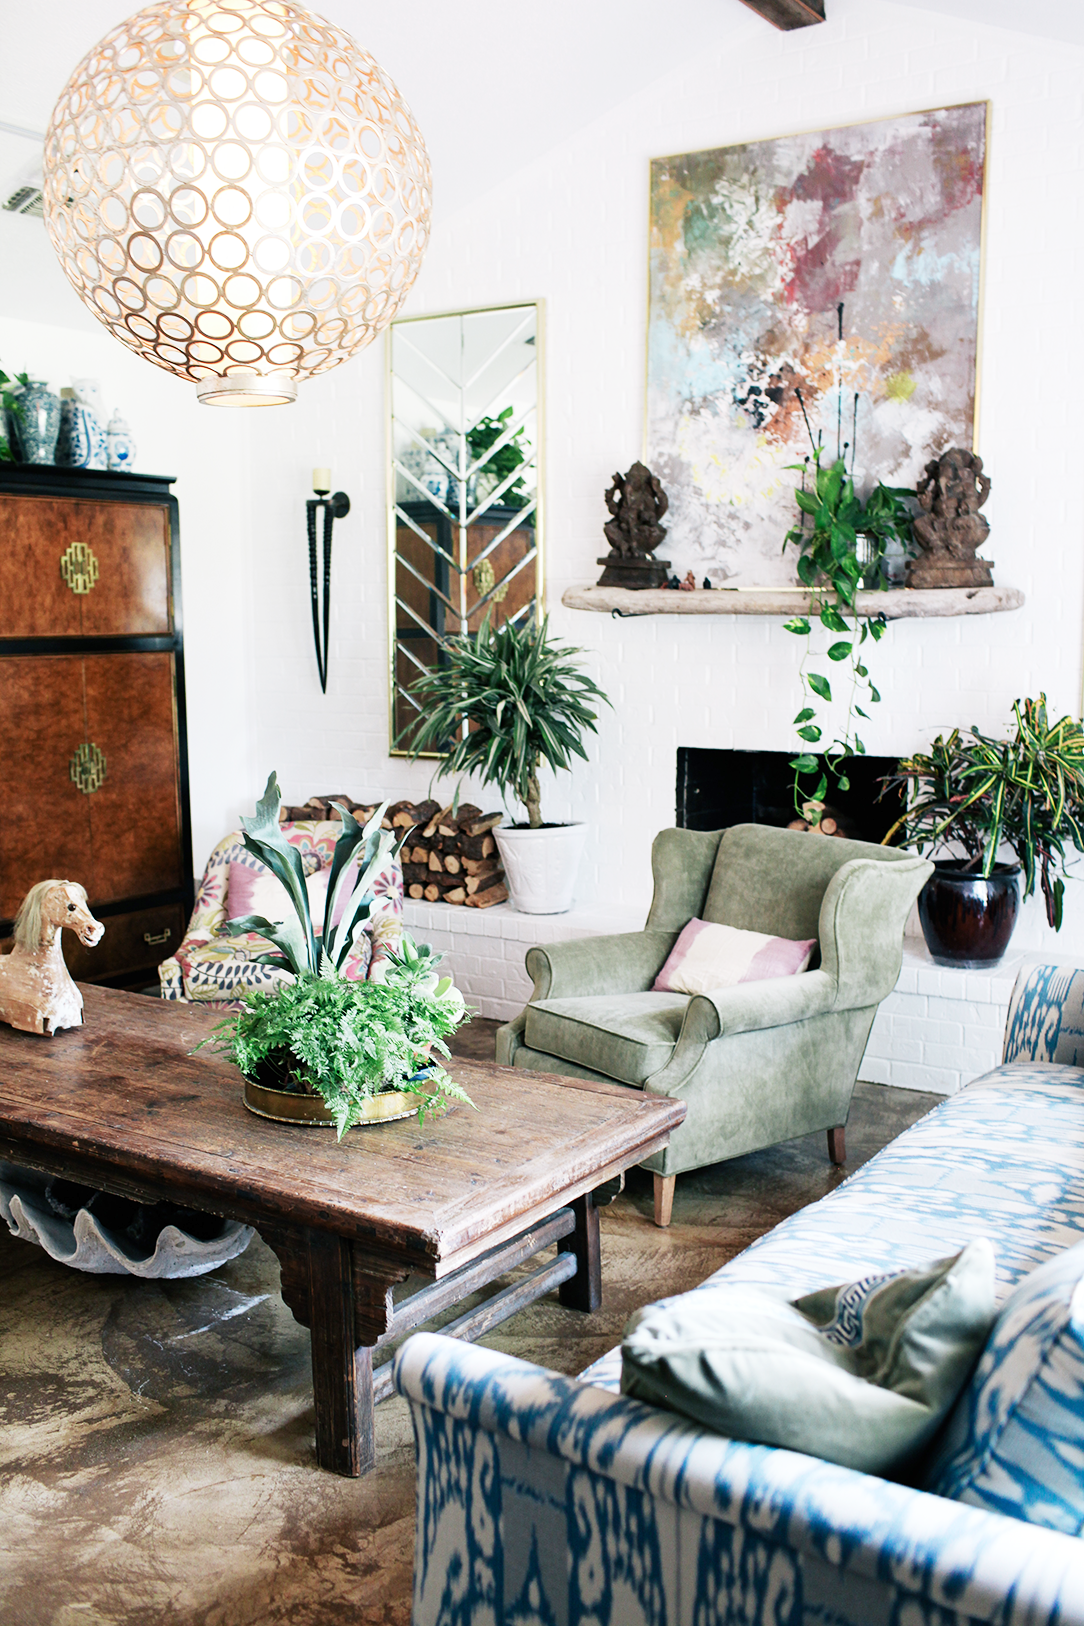 This is a living room that is filled with travelling mementos  Exactly the  inspiration I love for creating my own living space. Judy Aldridge Gives Her Home a Boho Thrift Store Makeover